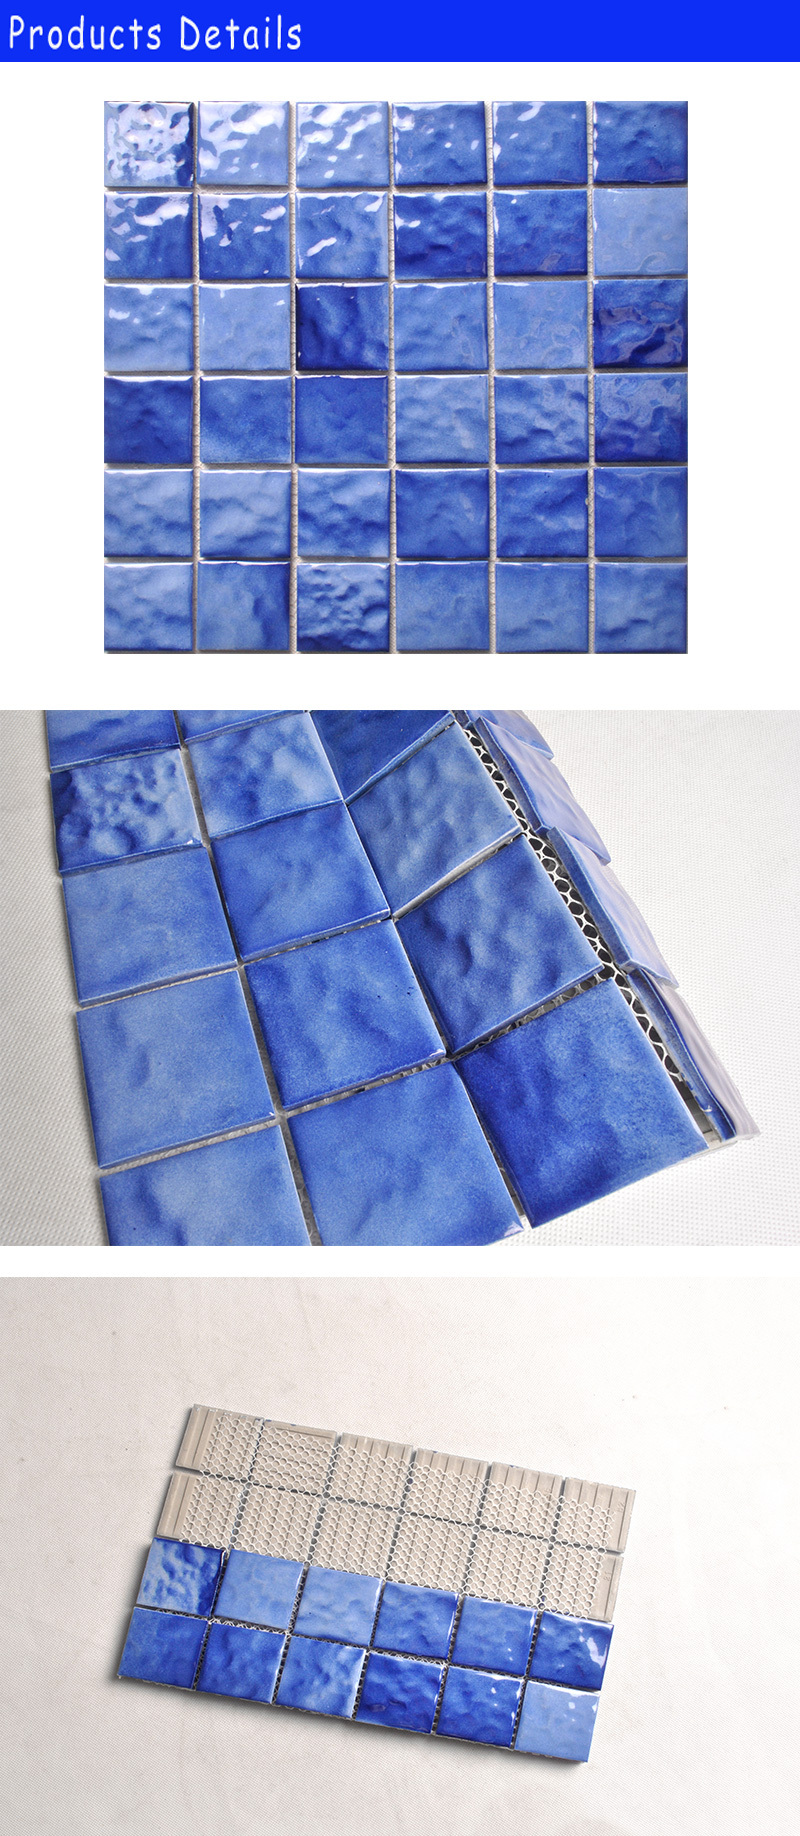 Online Tiles Store Of Cheap Artistic Glazed Ceramic Mosaic Pieces ...